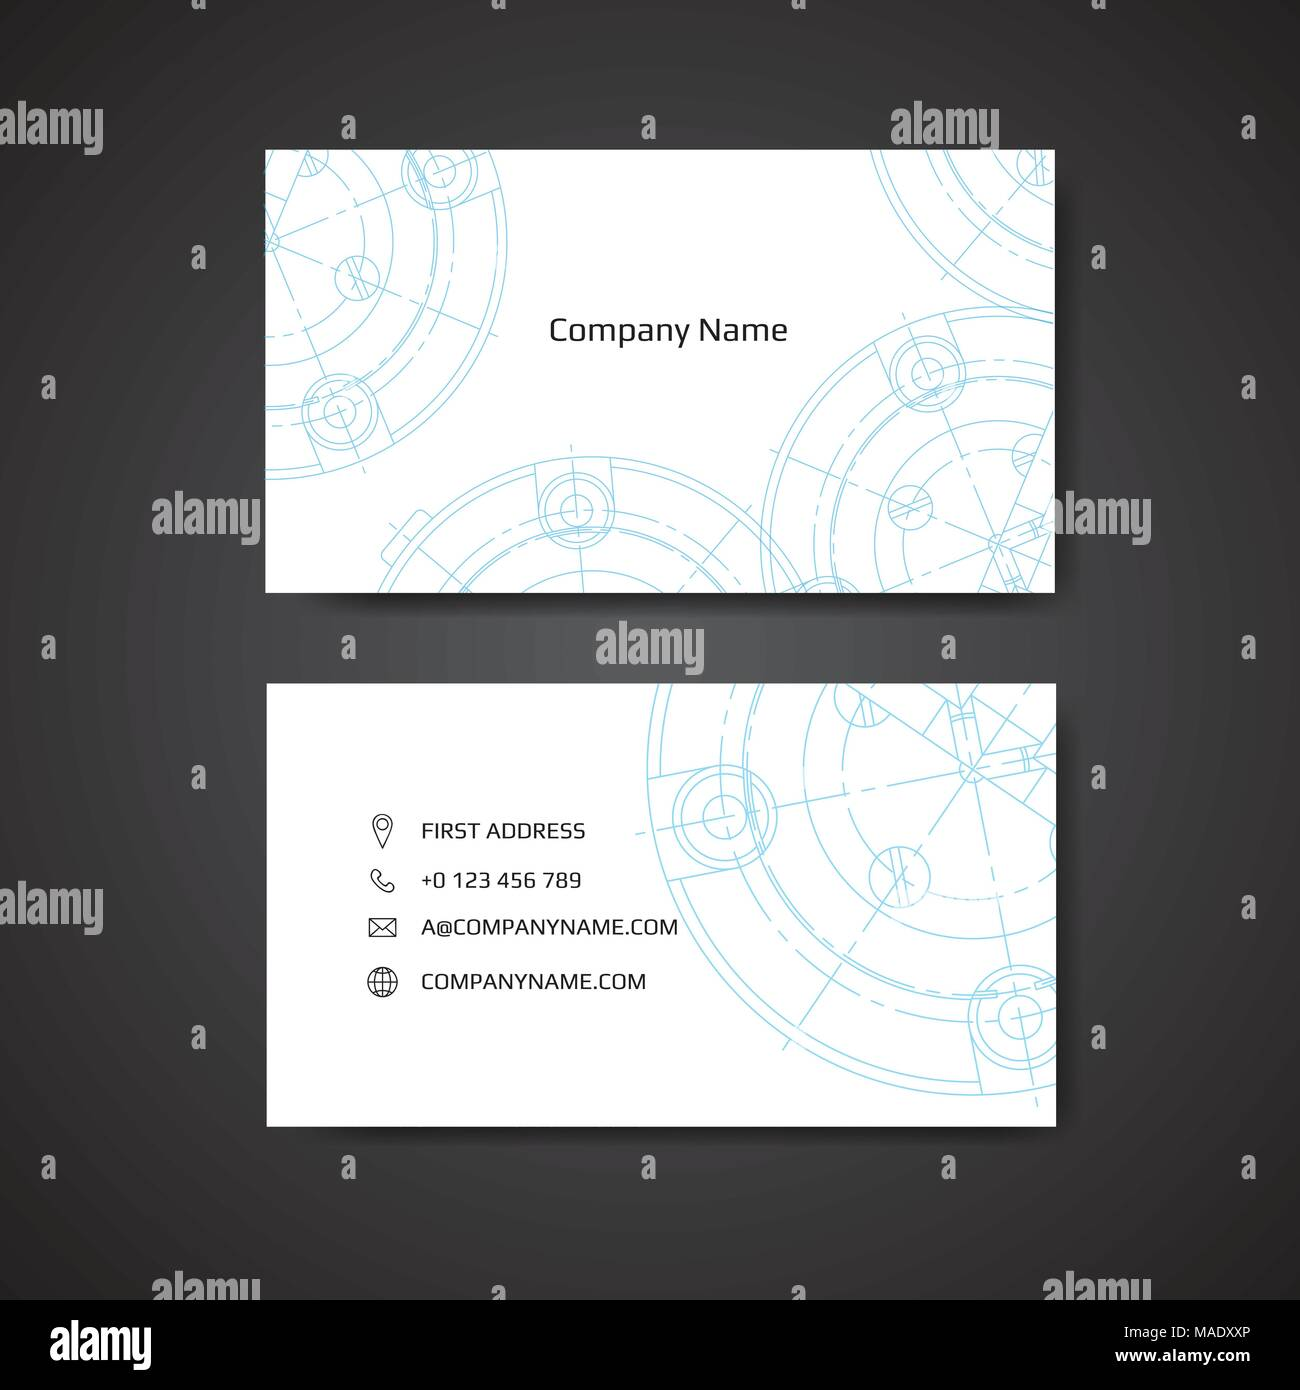 Business card for engineer and mechanical engineering business card business card for engineer and mechanical engineering business card colourmoves